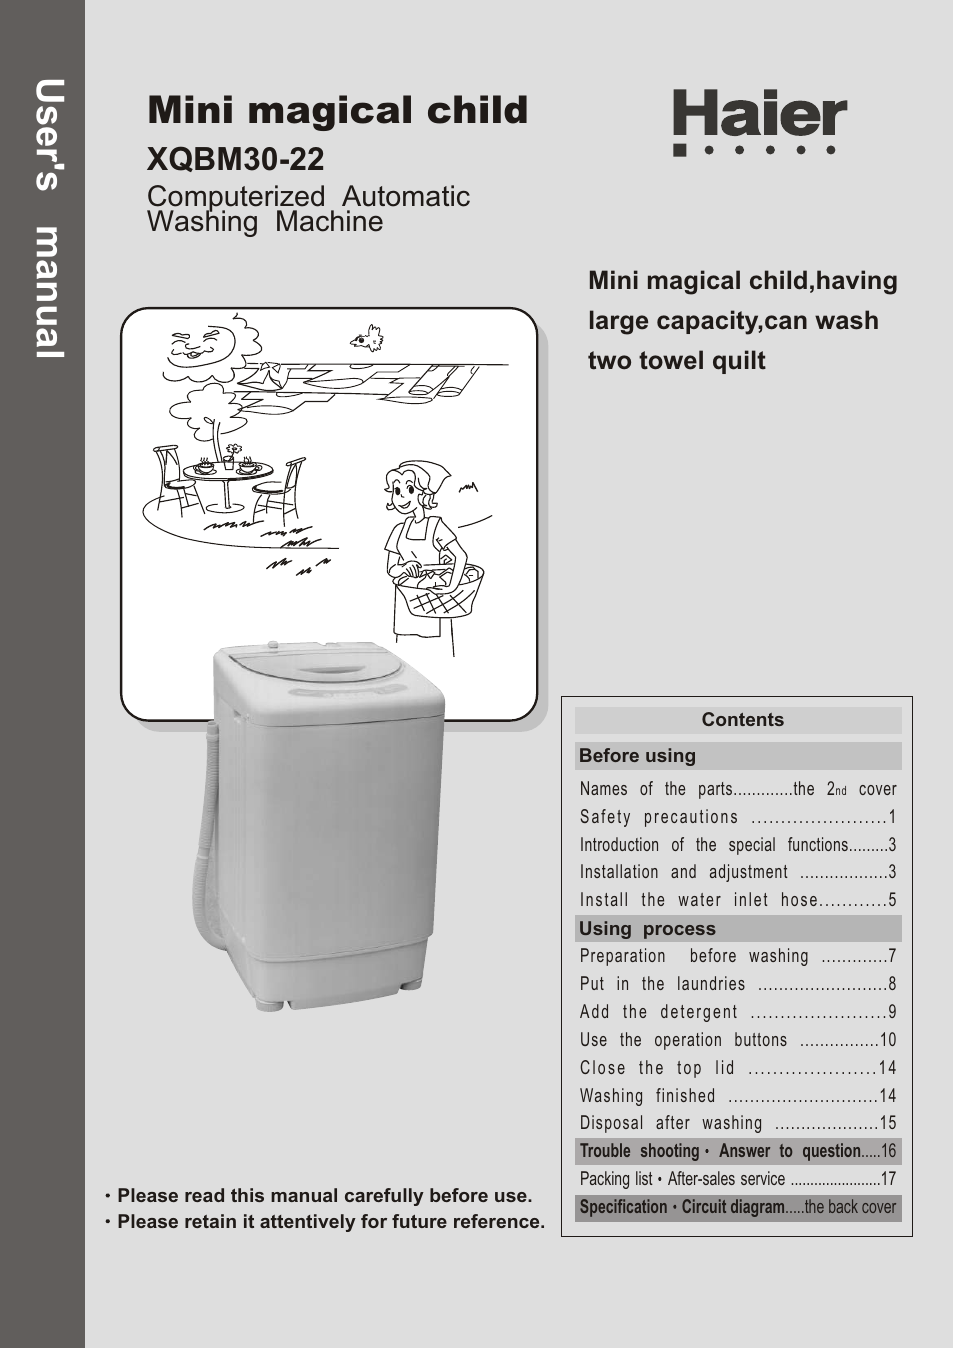 haier XQBM30-22 User Manual | 20 pages on crosley washing machine diagram, avanti washing machine diagram, hotpoint washing machine diagram, samsung washing machine diagram, speed queen washing machine diagram, ge washing machine diagram, maytag washing machine diagram, fisher paykel washing machine diagram,